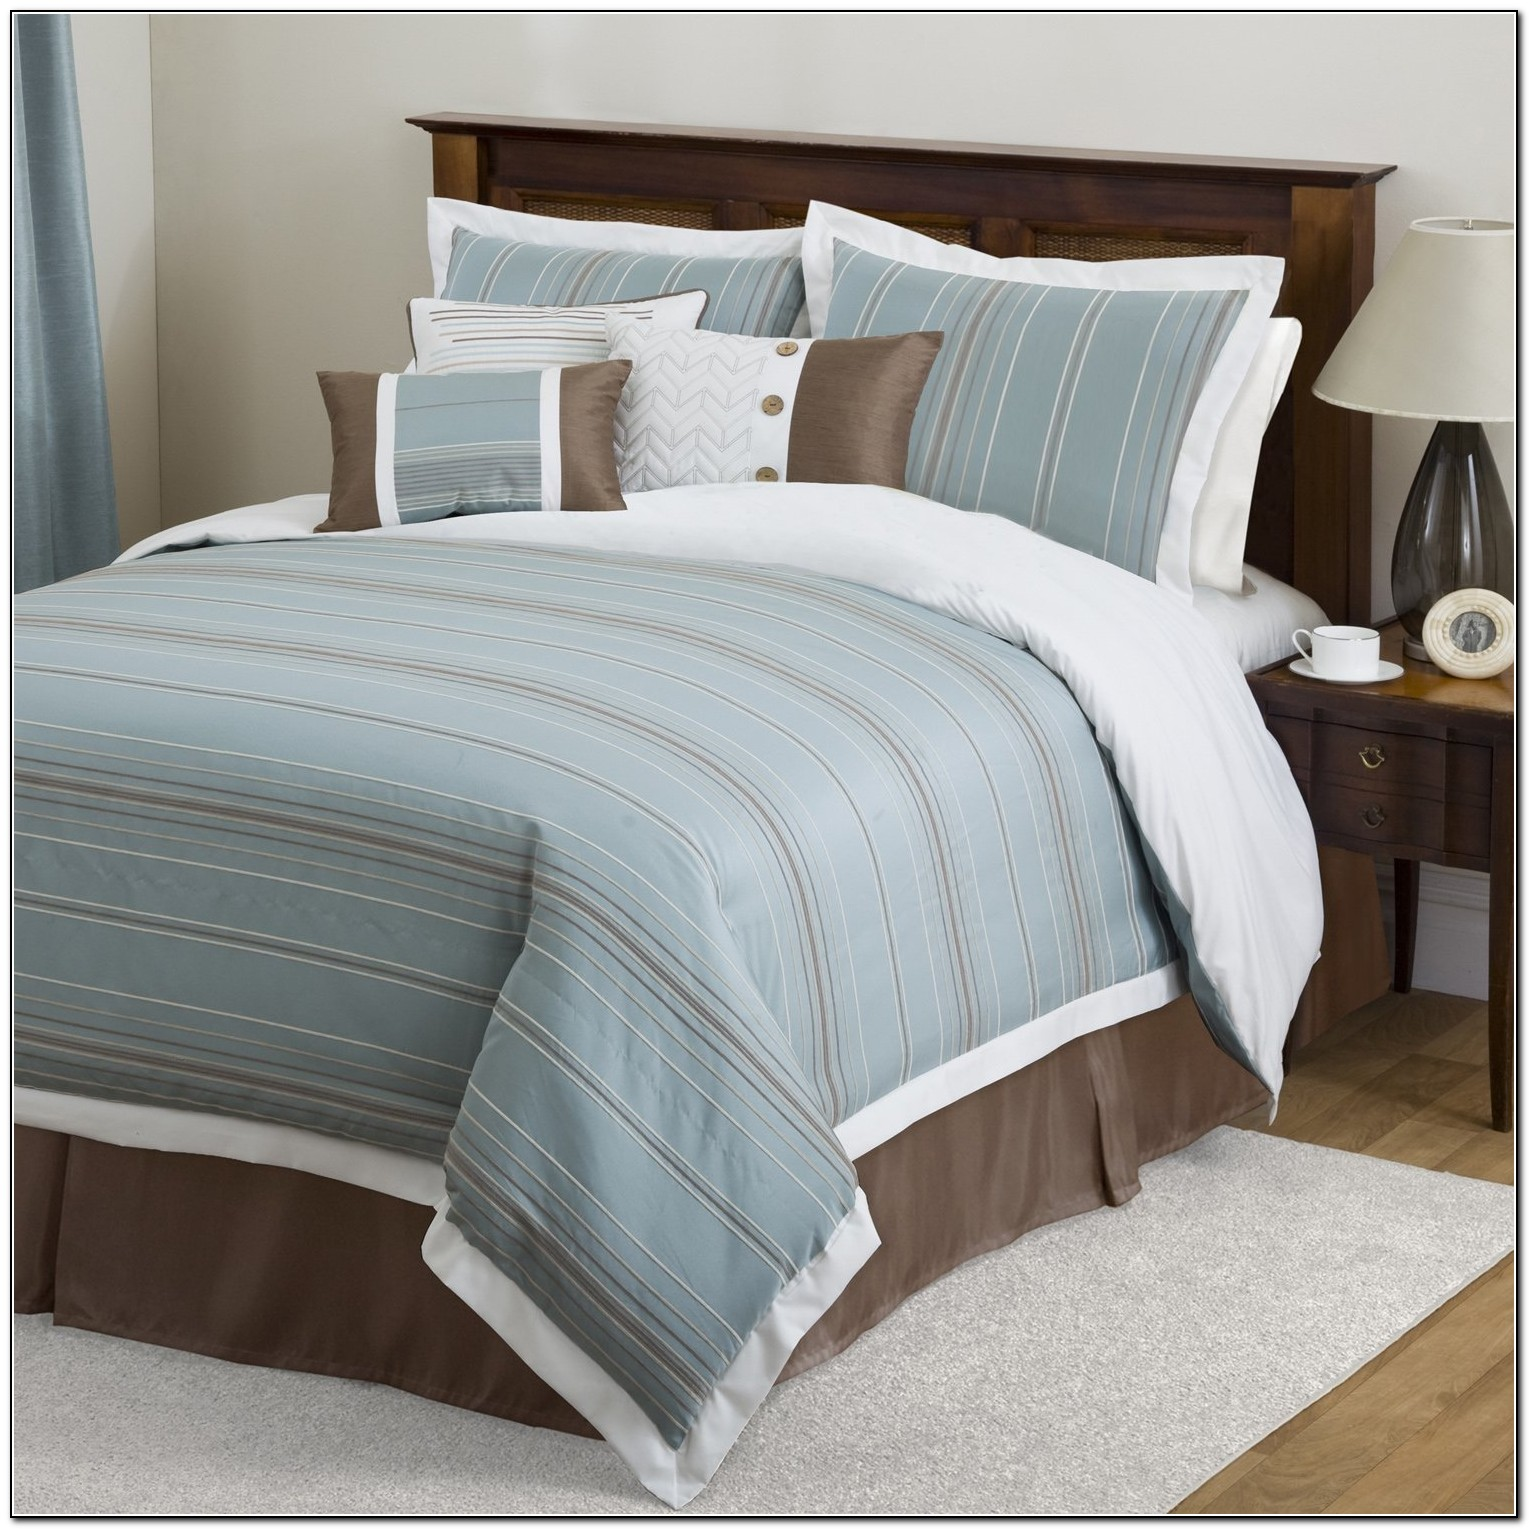 Queen Bedding Sets Target Beds Home Design Ideas